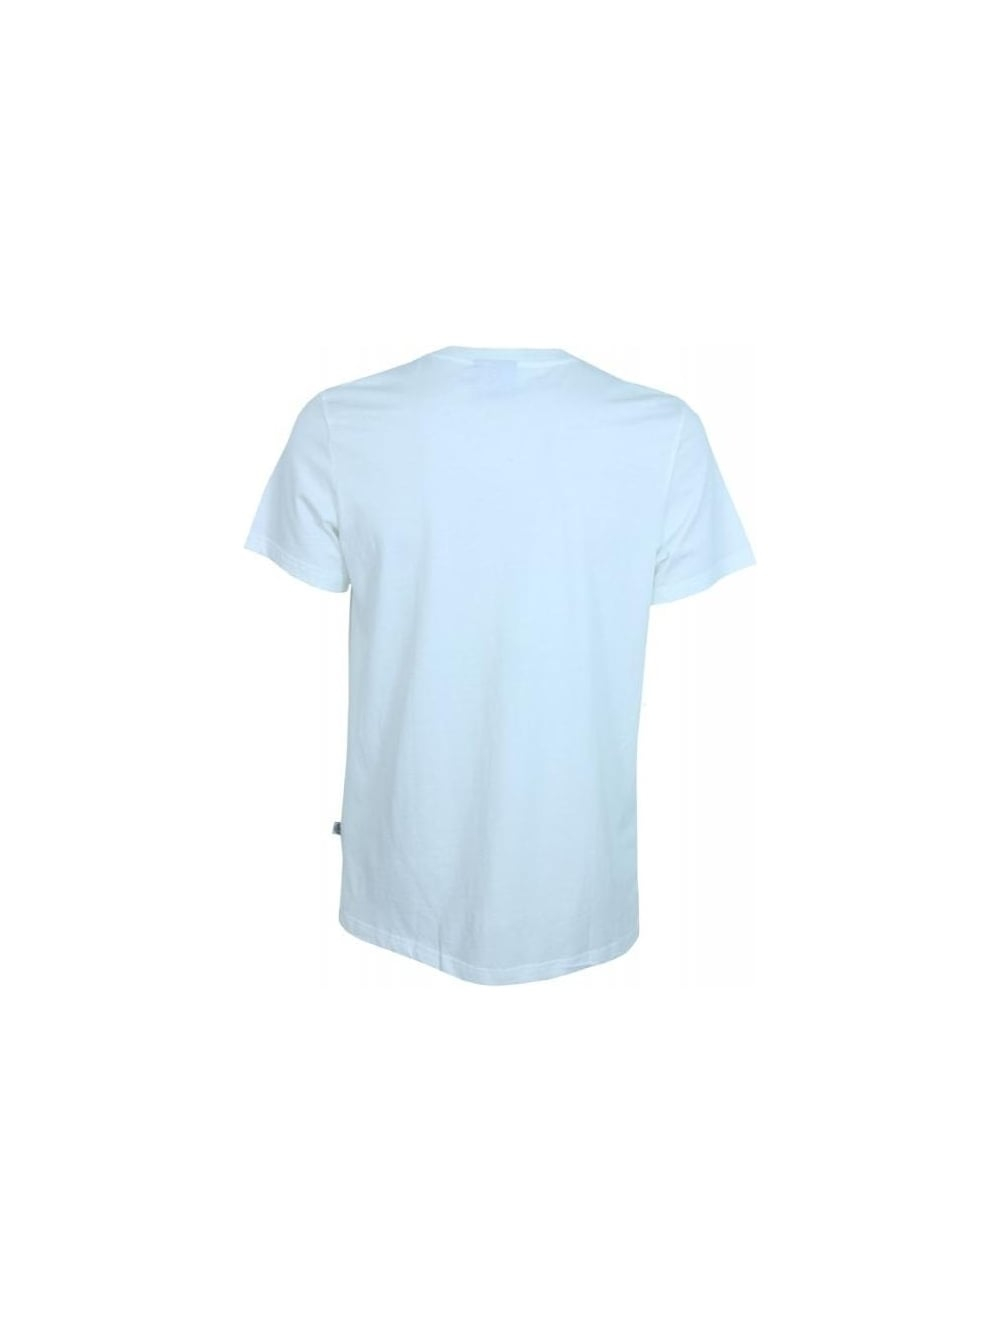 huge discount 5dbdc c2819 Fade Fill T Shirt - White